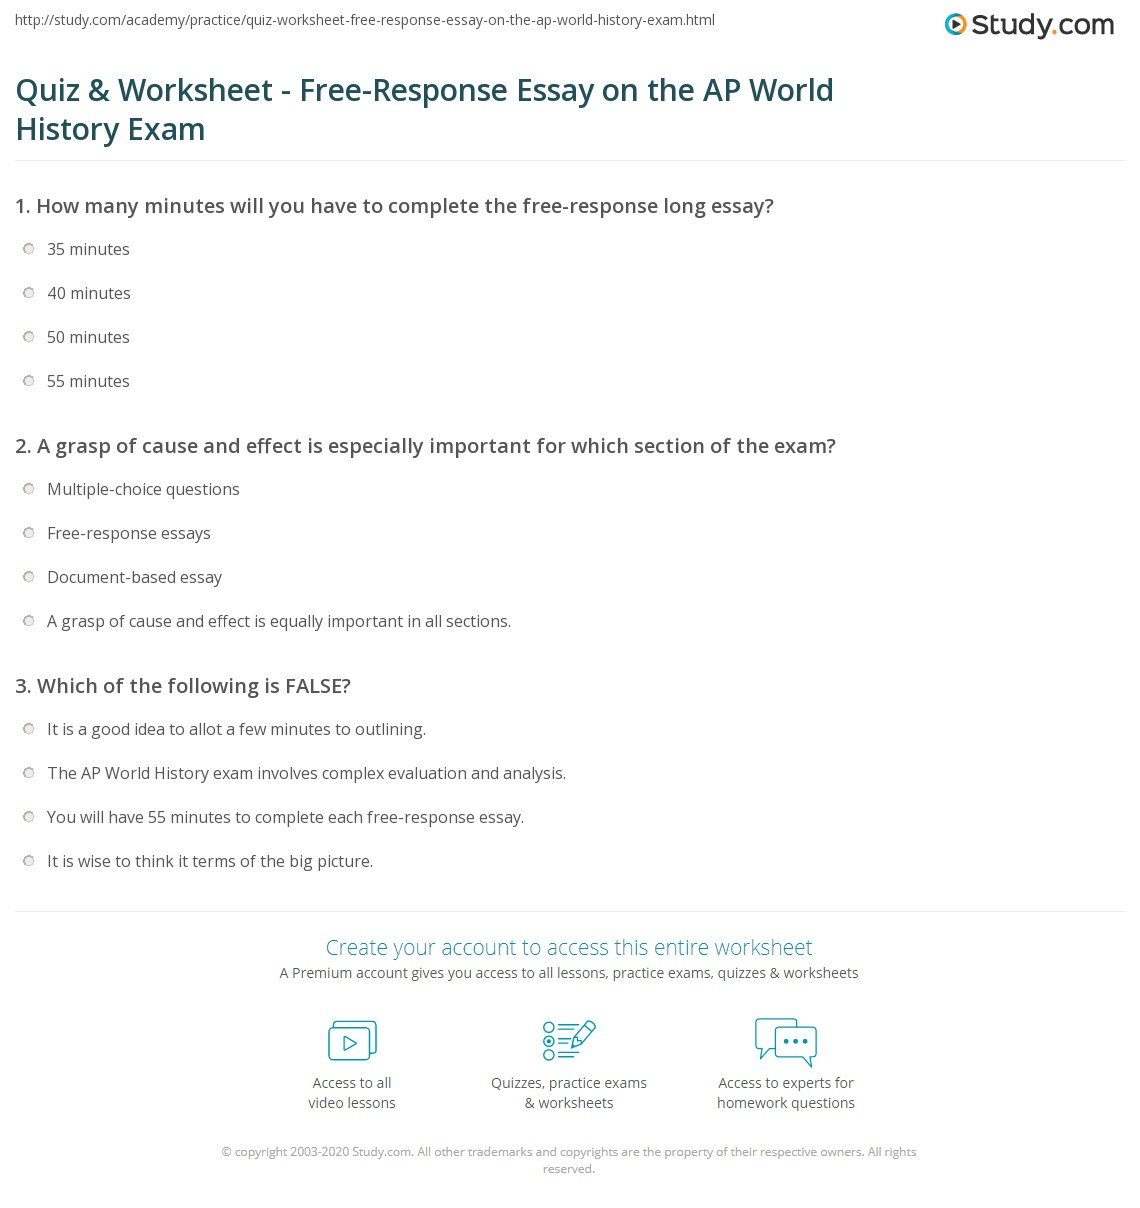 Learning English Essay Writing Print Mastering The Freeresponse Essay Question On The Ap World History  Exam Section Ii Part B Worksheet Science Fiction Essay also Samples Of Persuasive Essays For High School Students Quiz  Worksheet  Freeresponse Essay On The Ap World History Exam  Essays Term Papers